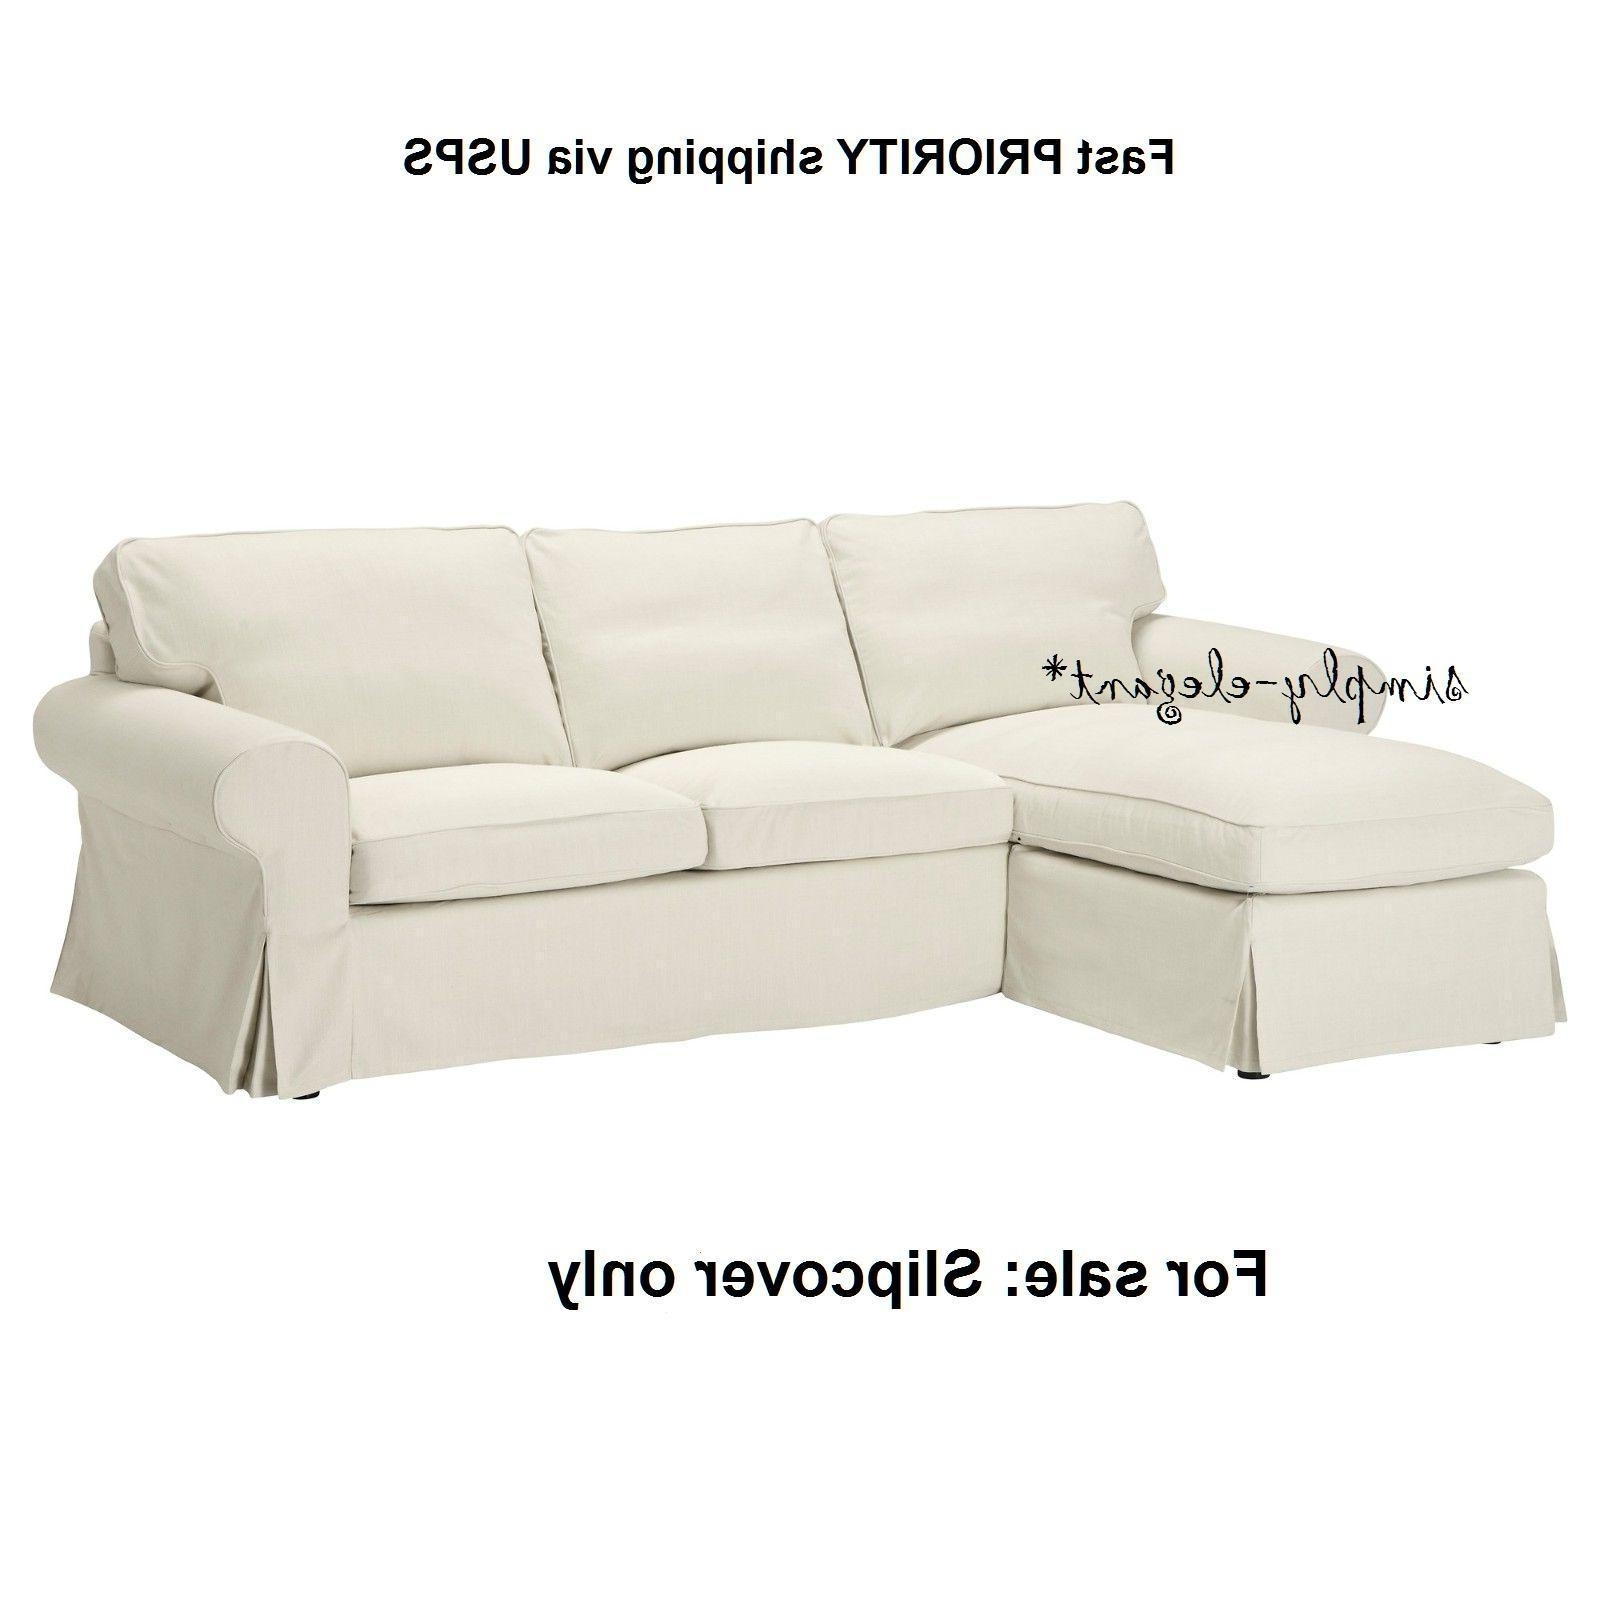 Best And Newest Ektorp Chaises With Ikea Ektorp Cover For Loveseat With Chaise Svanby Beige Sofa (View 13 of 15)